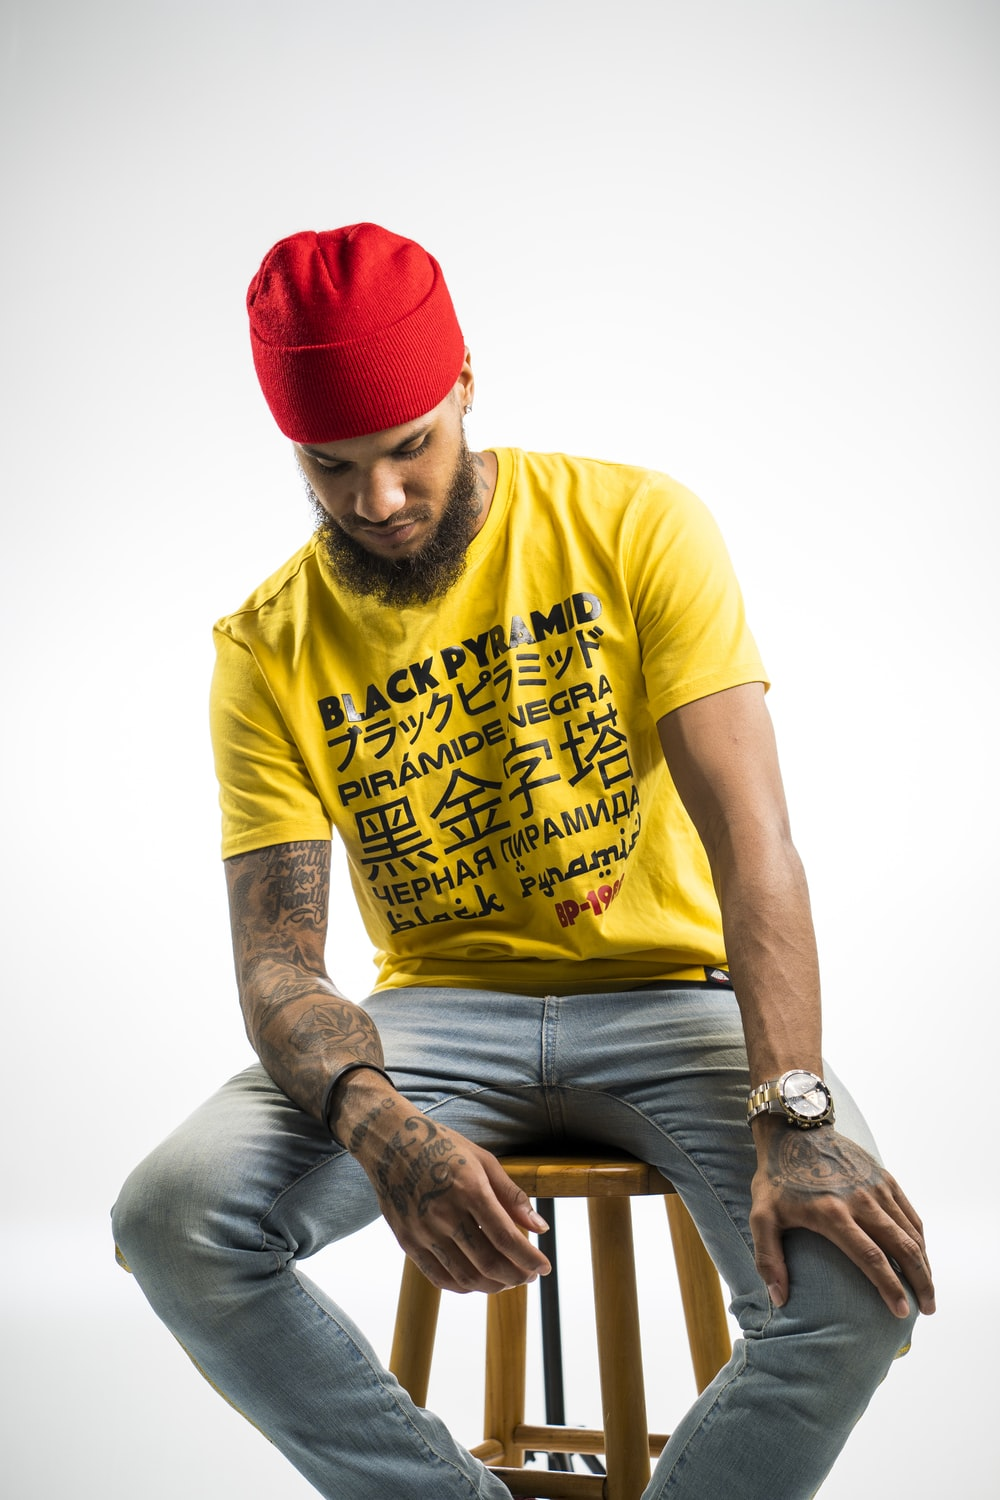 man wearing yellow and black printed crew-neck t-shirt and red knit cap sitting in wooden stool while looking down